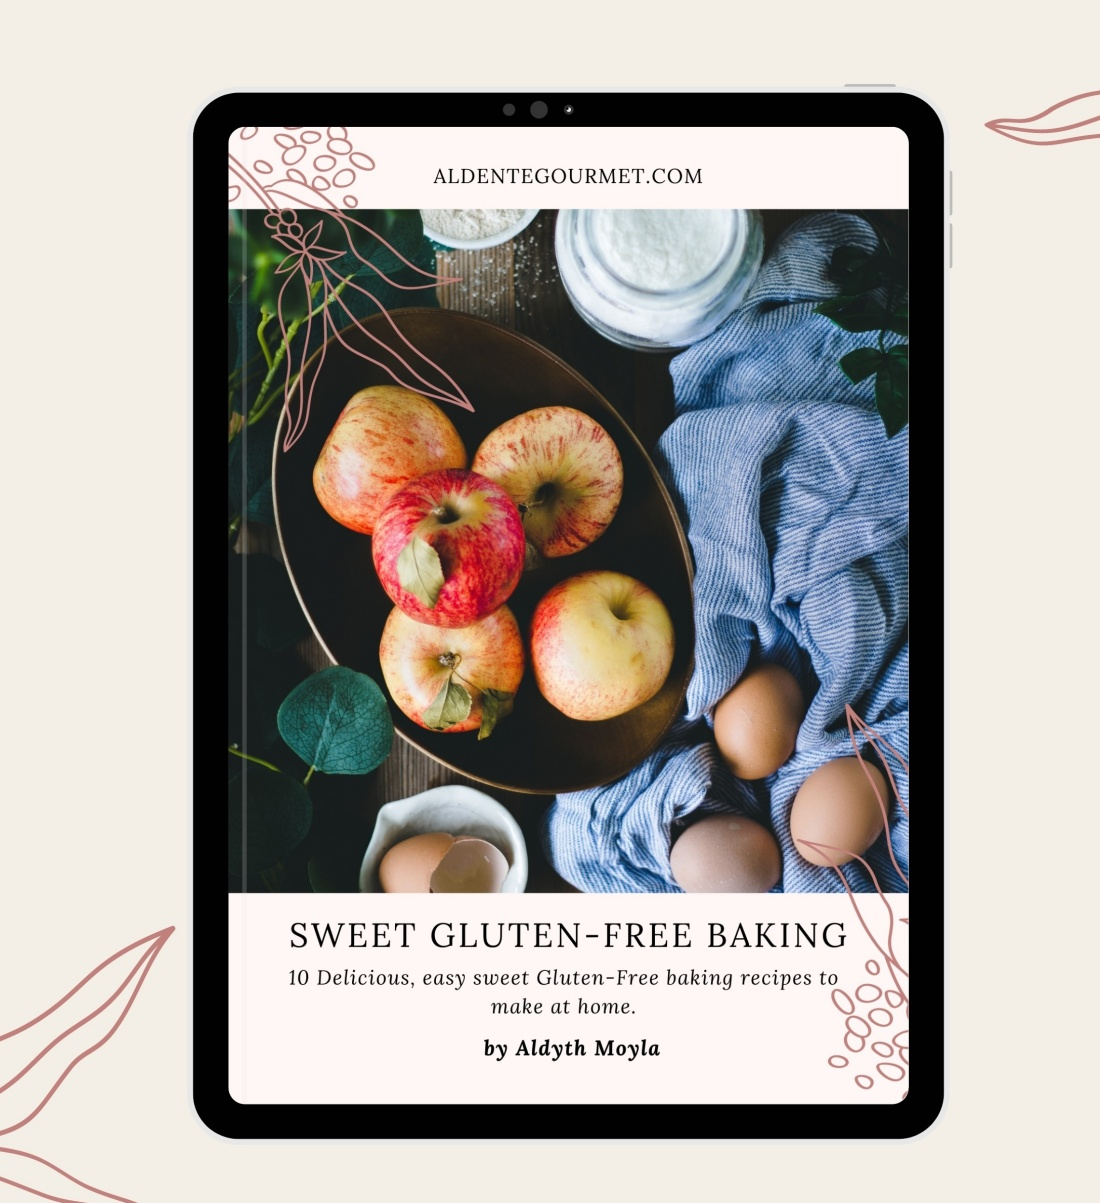 New eCookbook! 10+ Delcious Sweet Gluten-Free Baking Recipes. Read more & order @ the shop!